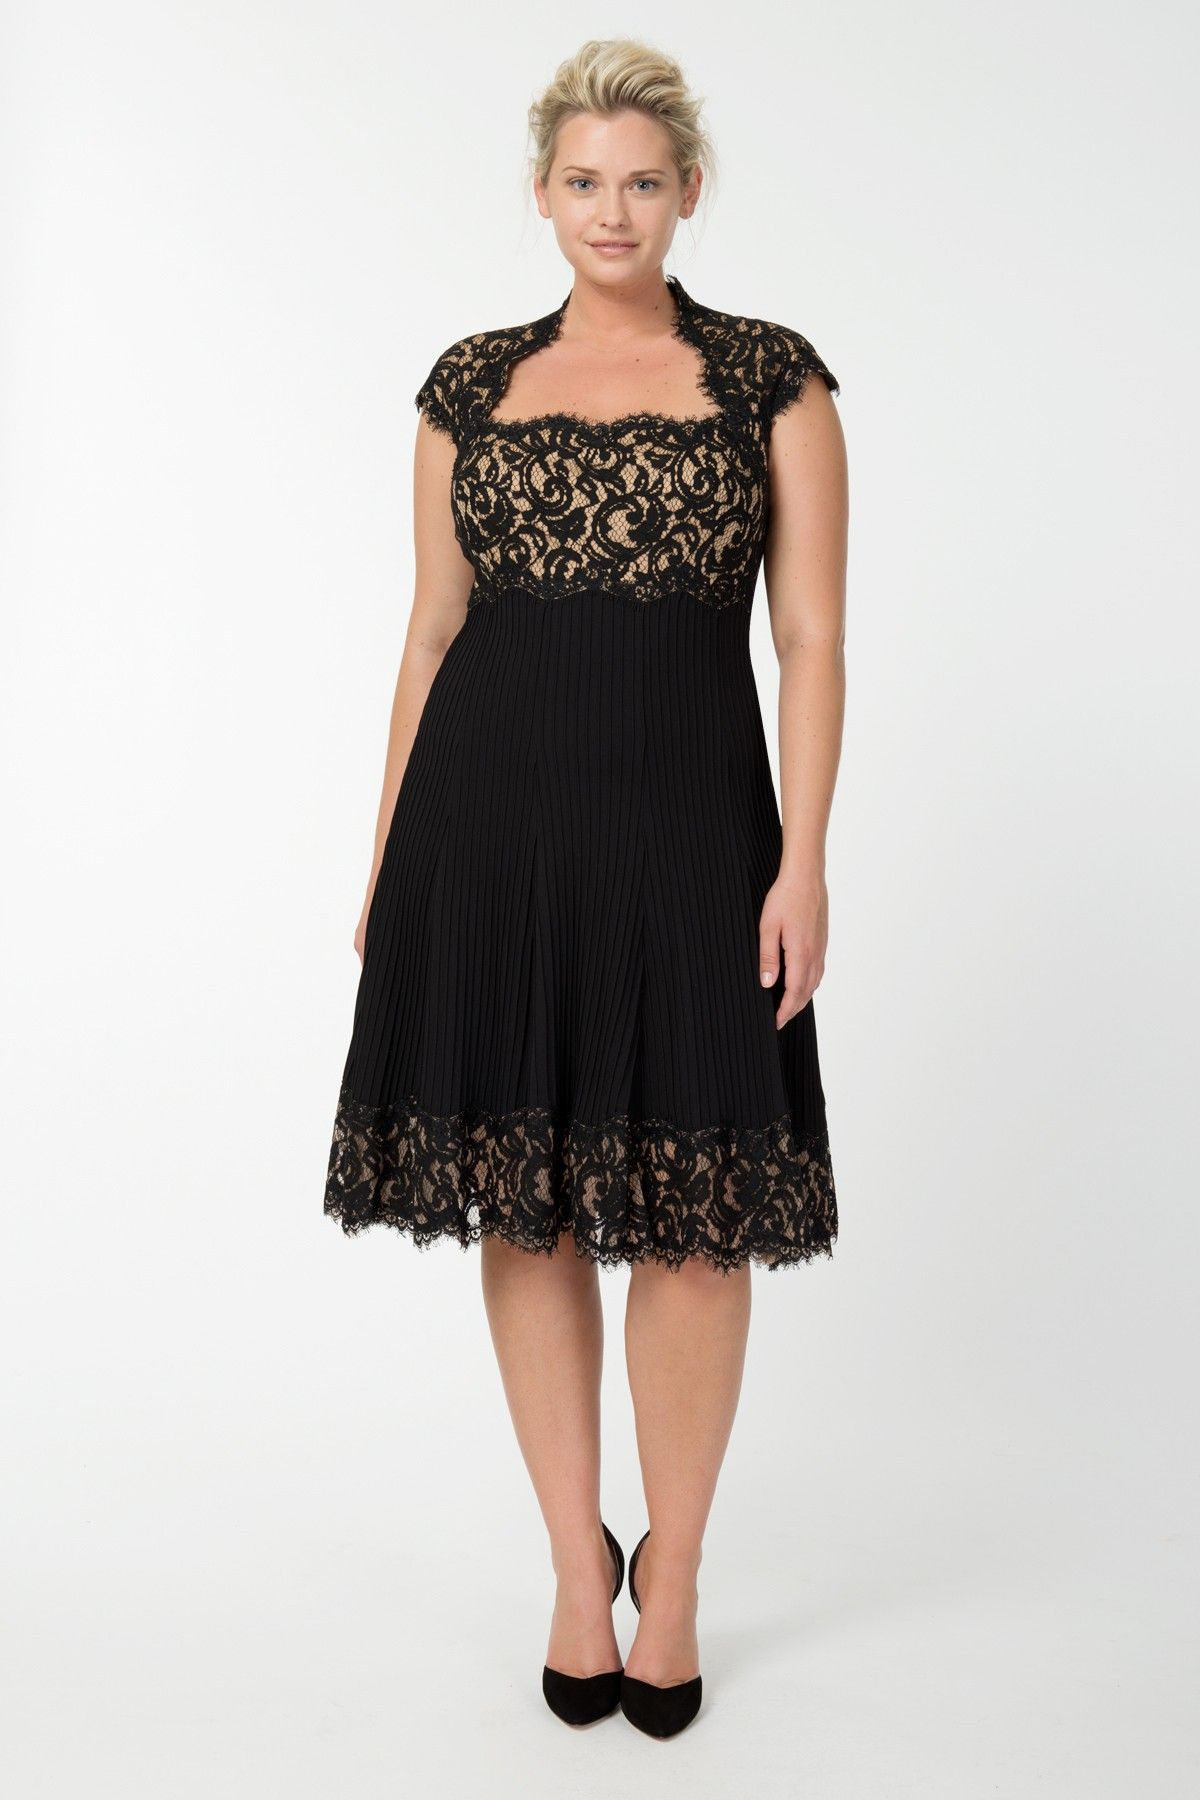 Pintuck Jersey and Lace Cap Sleeve Dress in Black / Nude - Plus Size ...